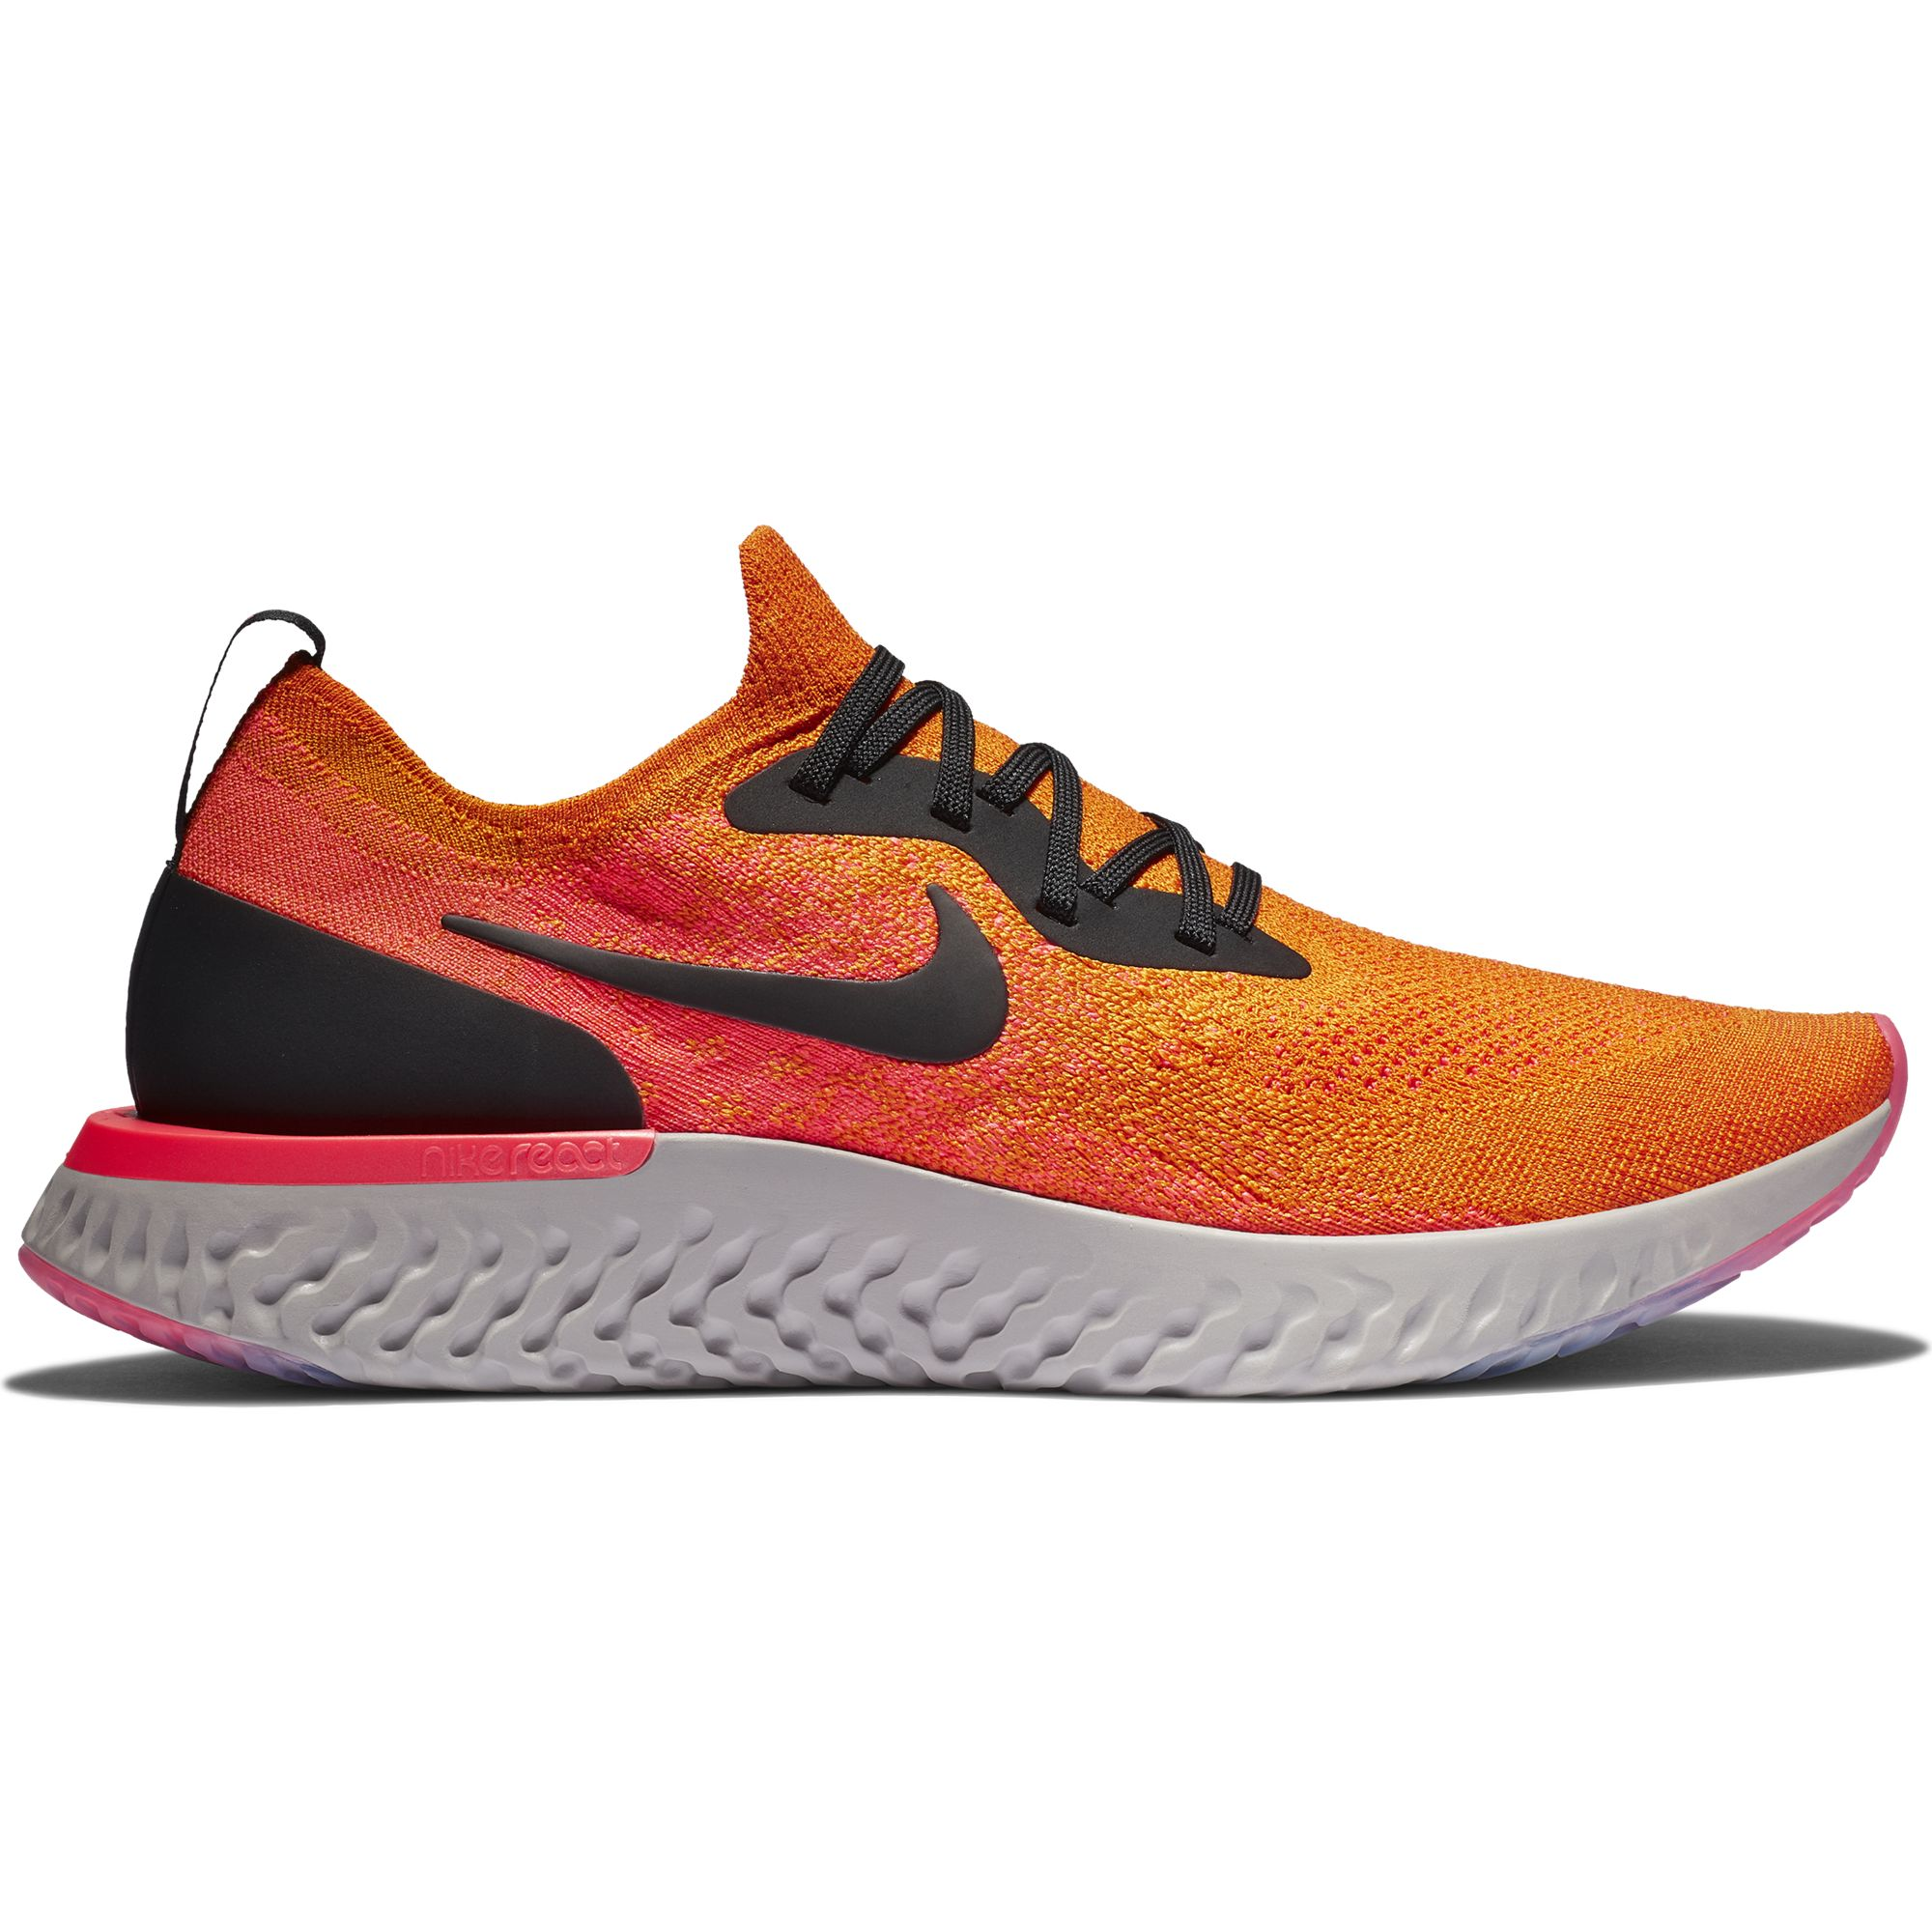 42e11b826b6c Nike Men s Epic React Flyknit - The Lincolnshire Runner  Specialist ...